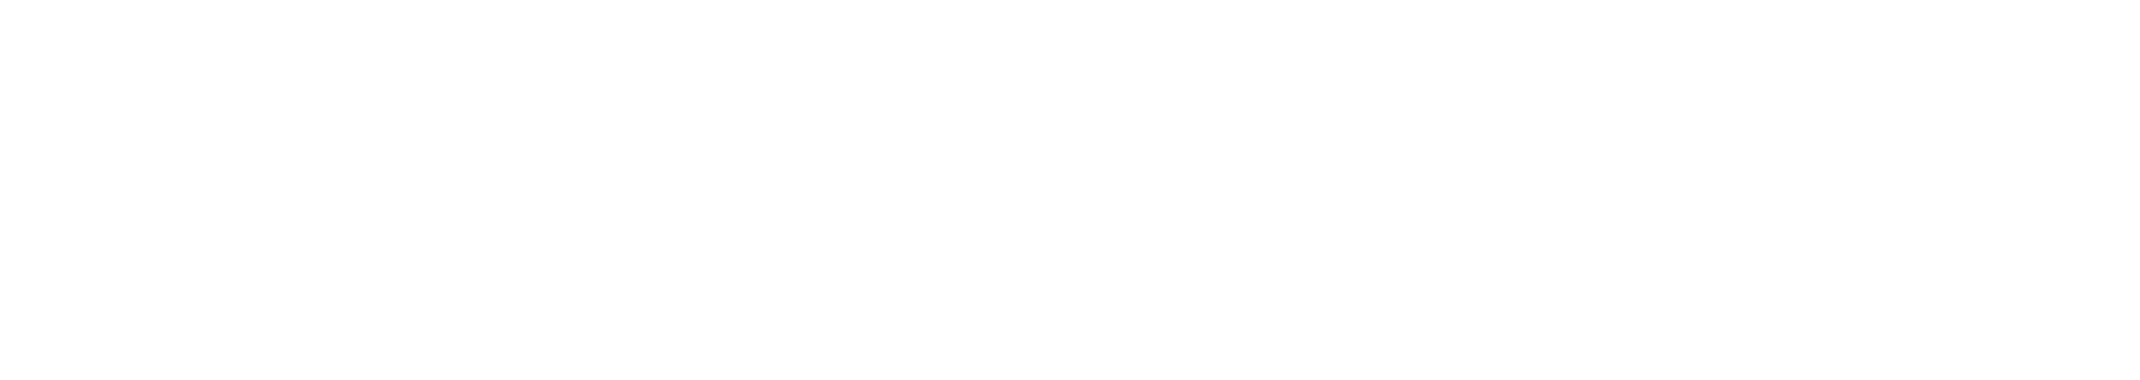 project-icons